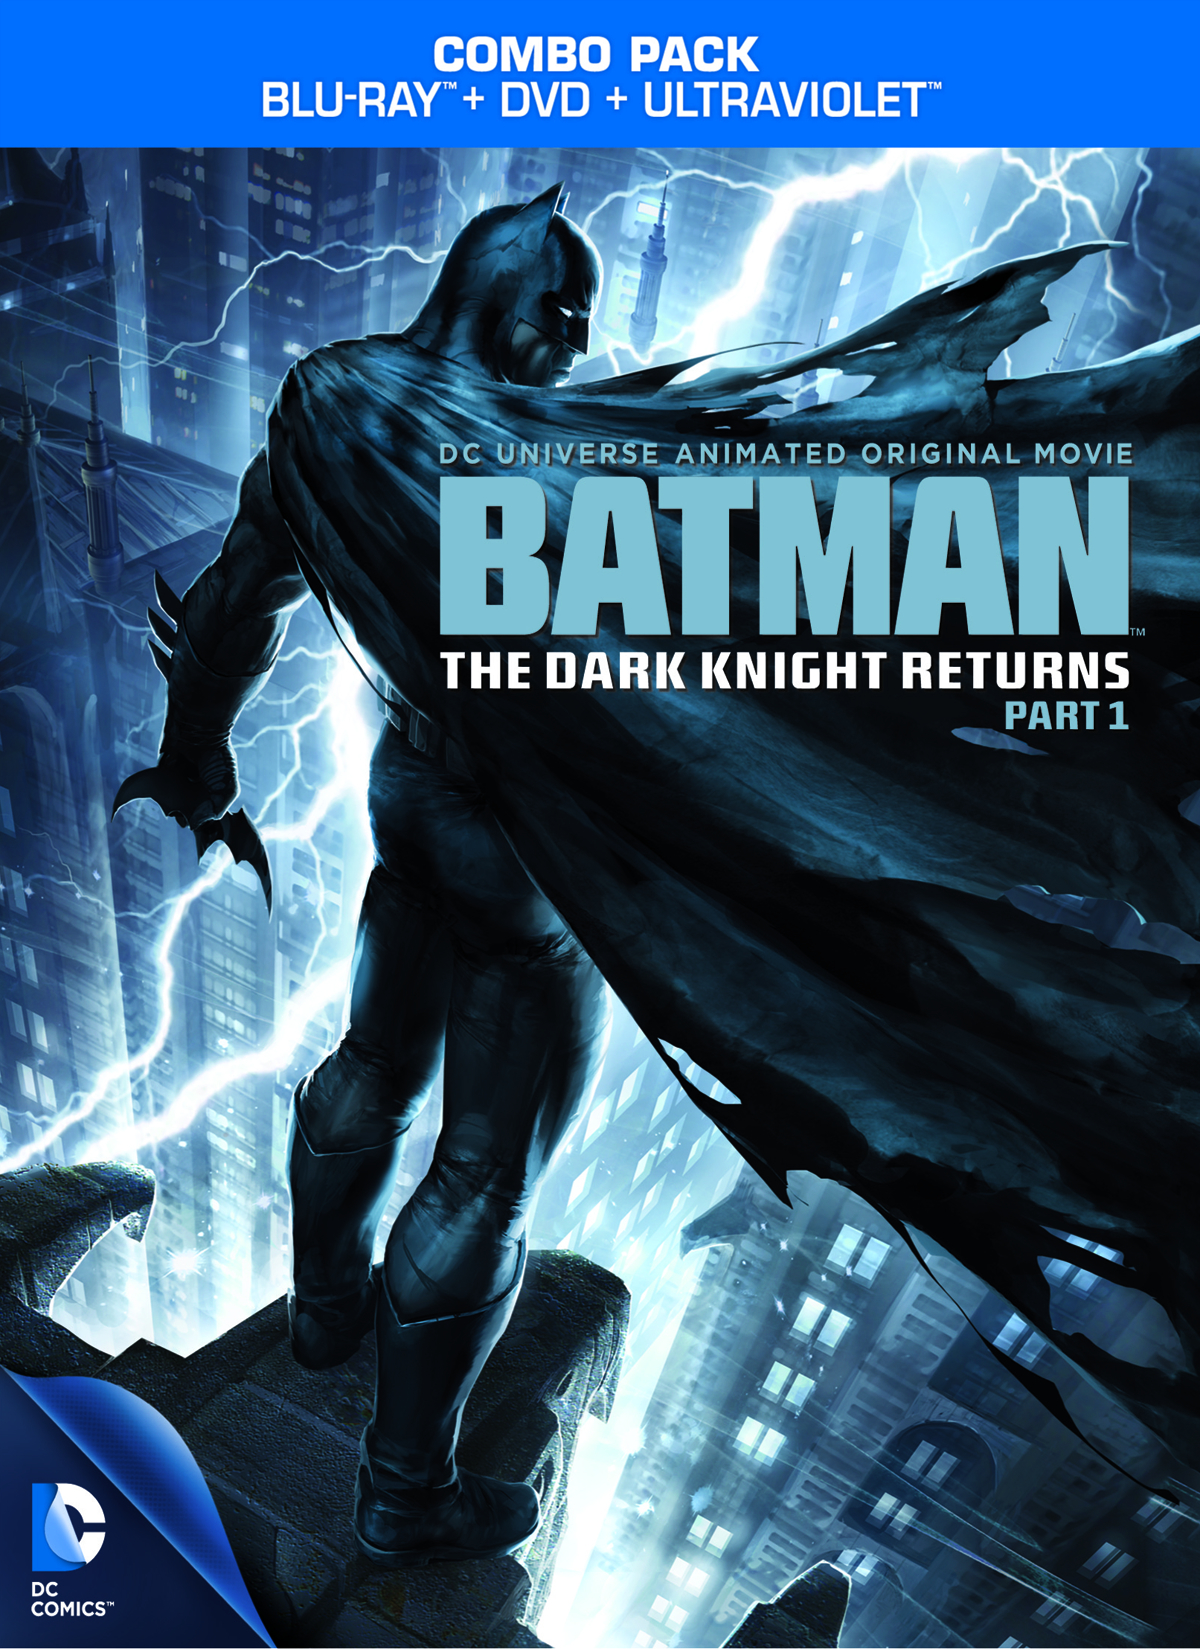 DCU BATMAN THE DARK KNIGHT RETURNS BD + DVD PT 1